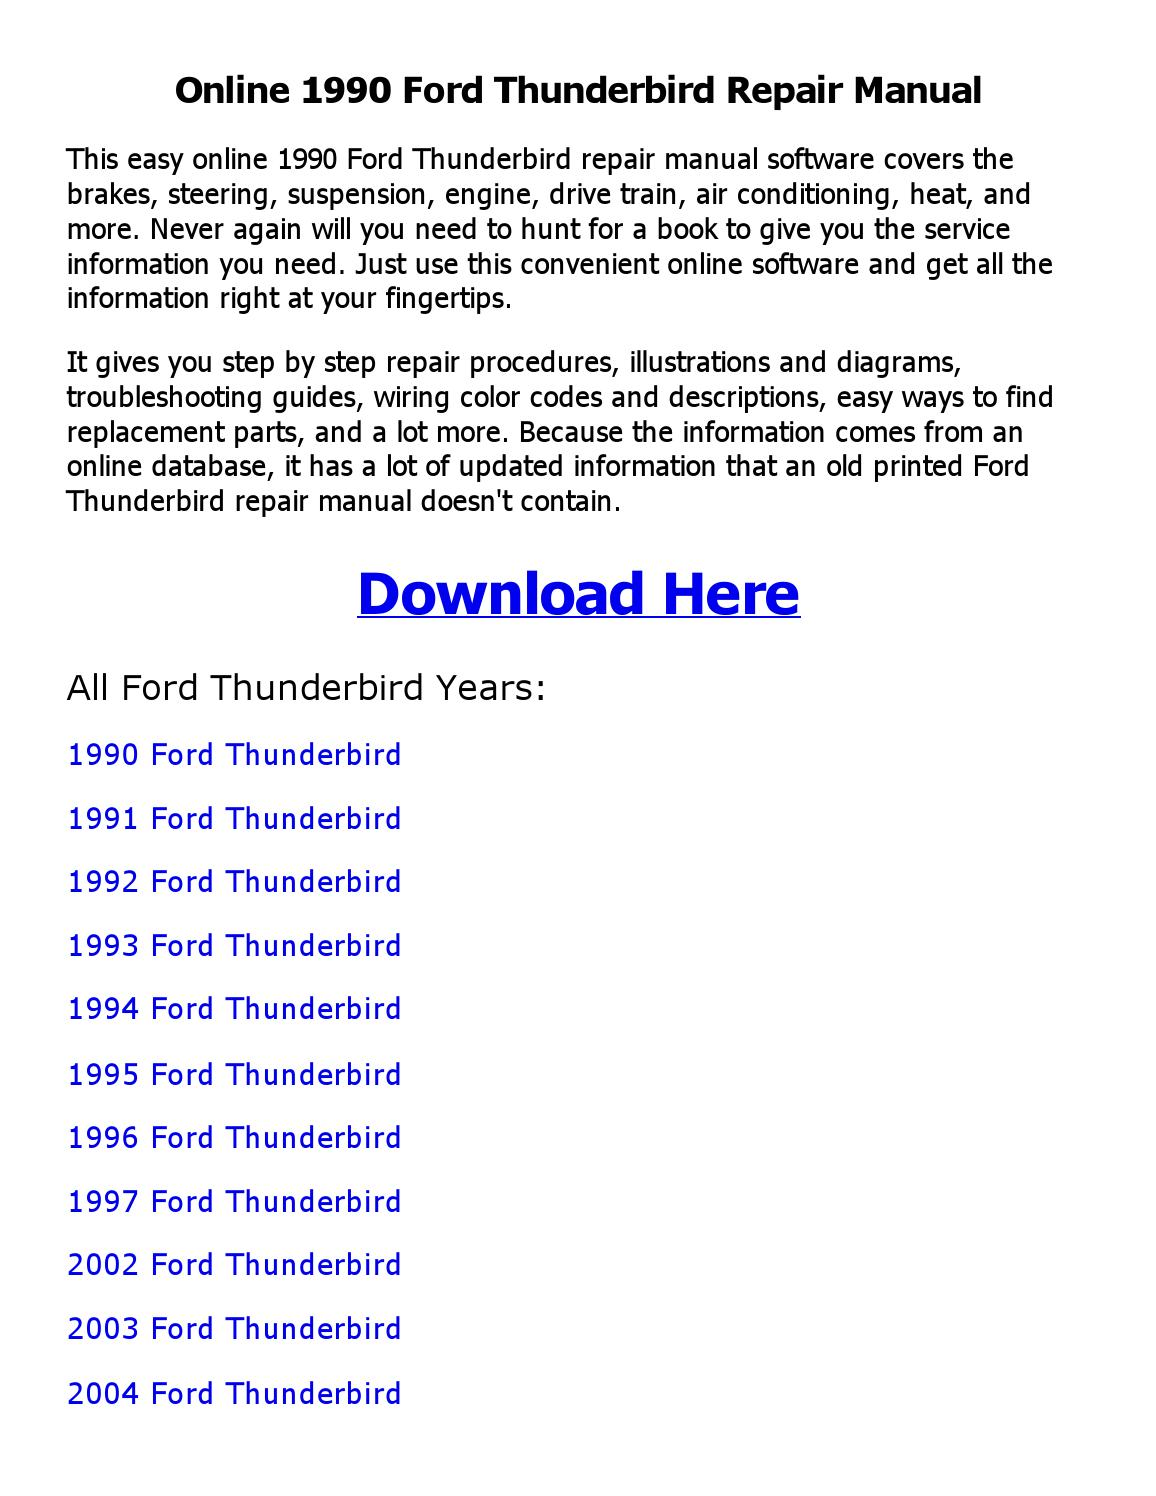 1990 Ford Thunderbird Repair Manual Online By Shoaibsiddique Issuu 2004 Engine Diagram